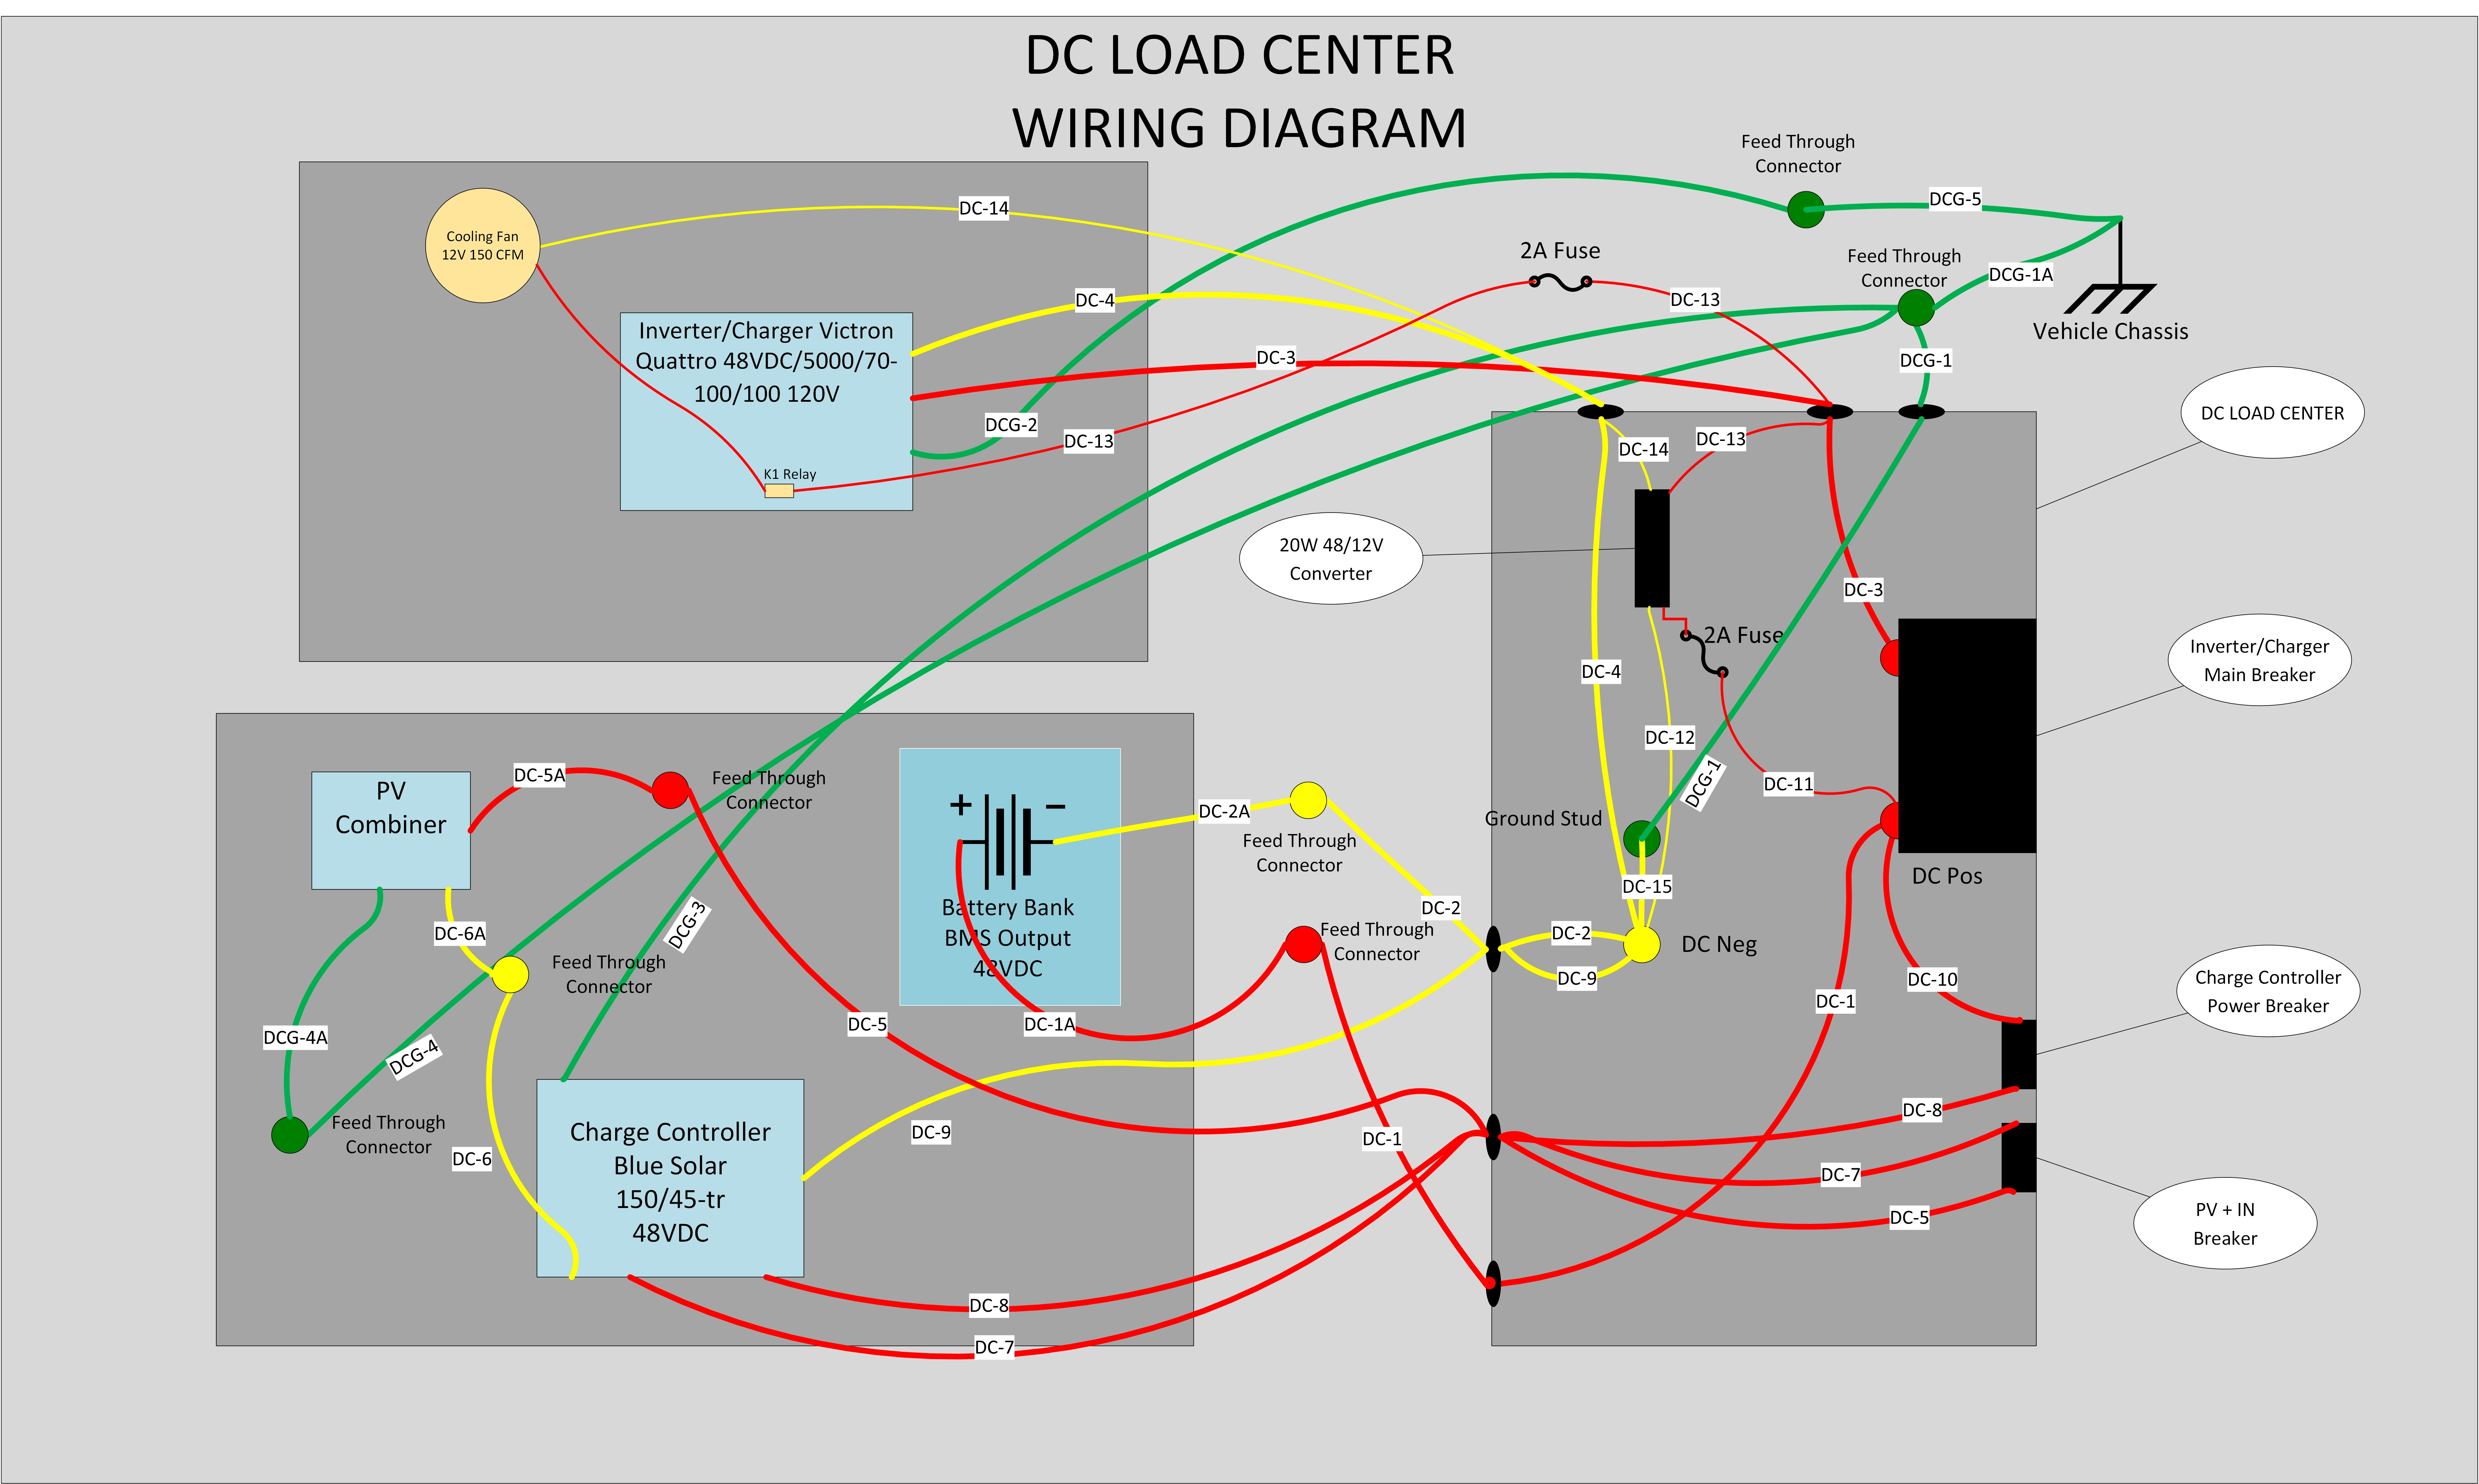 dc distribution panel wiring diagram a mad scientist's take on the ultimate electrical system ... dc cdi ignition wiring diagram